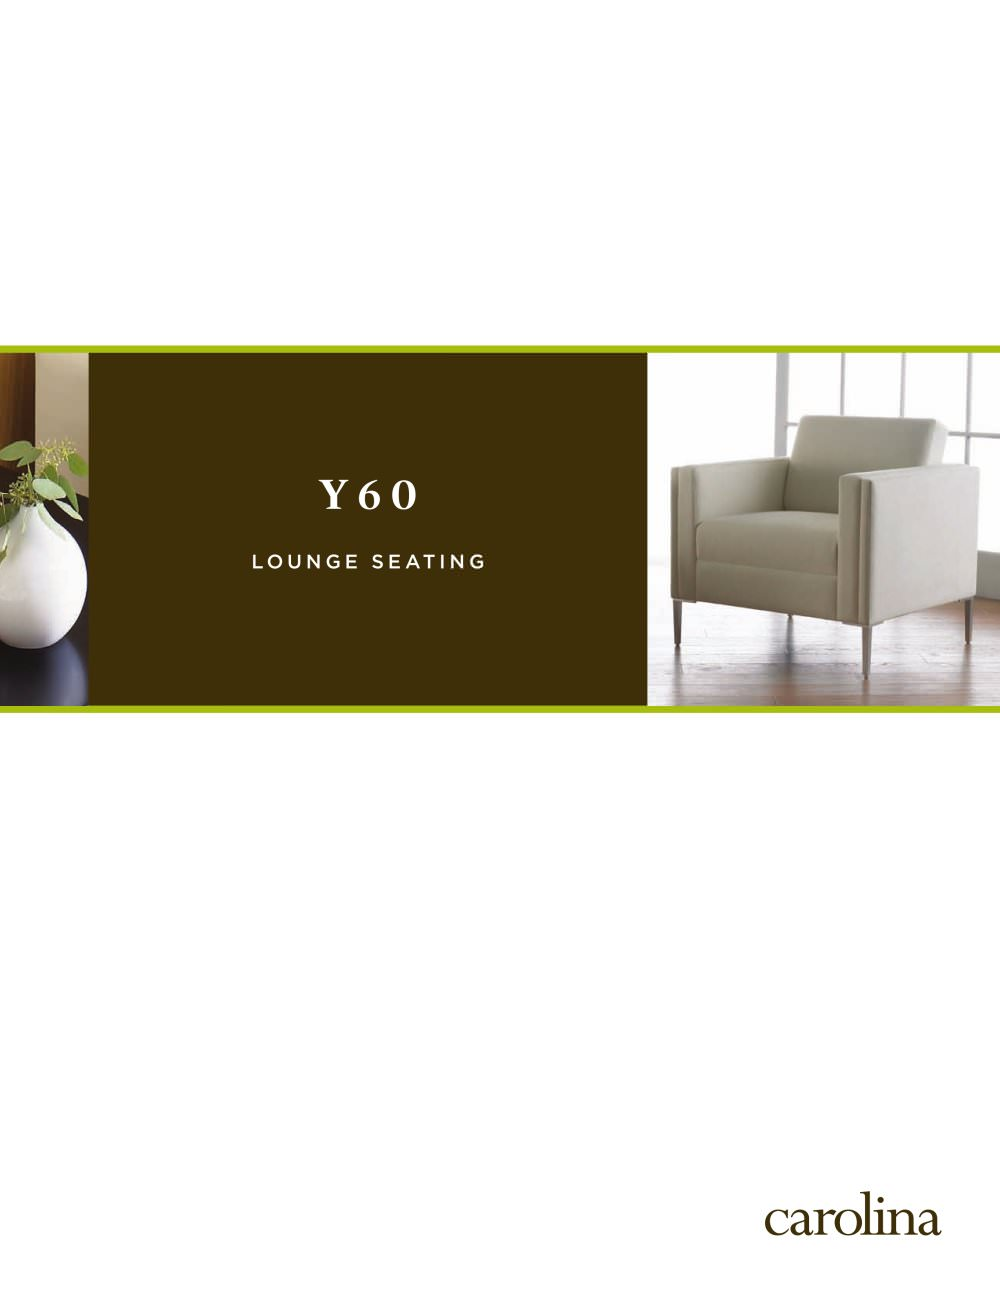 Lounge:y60   1 / 5 Pages